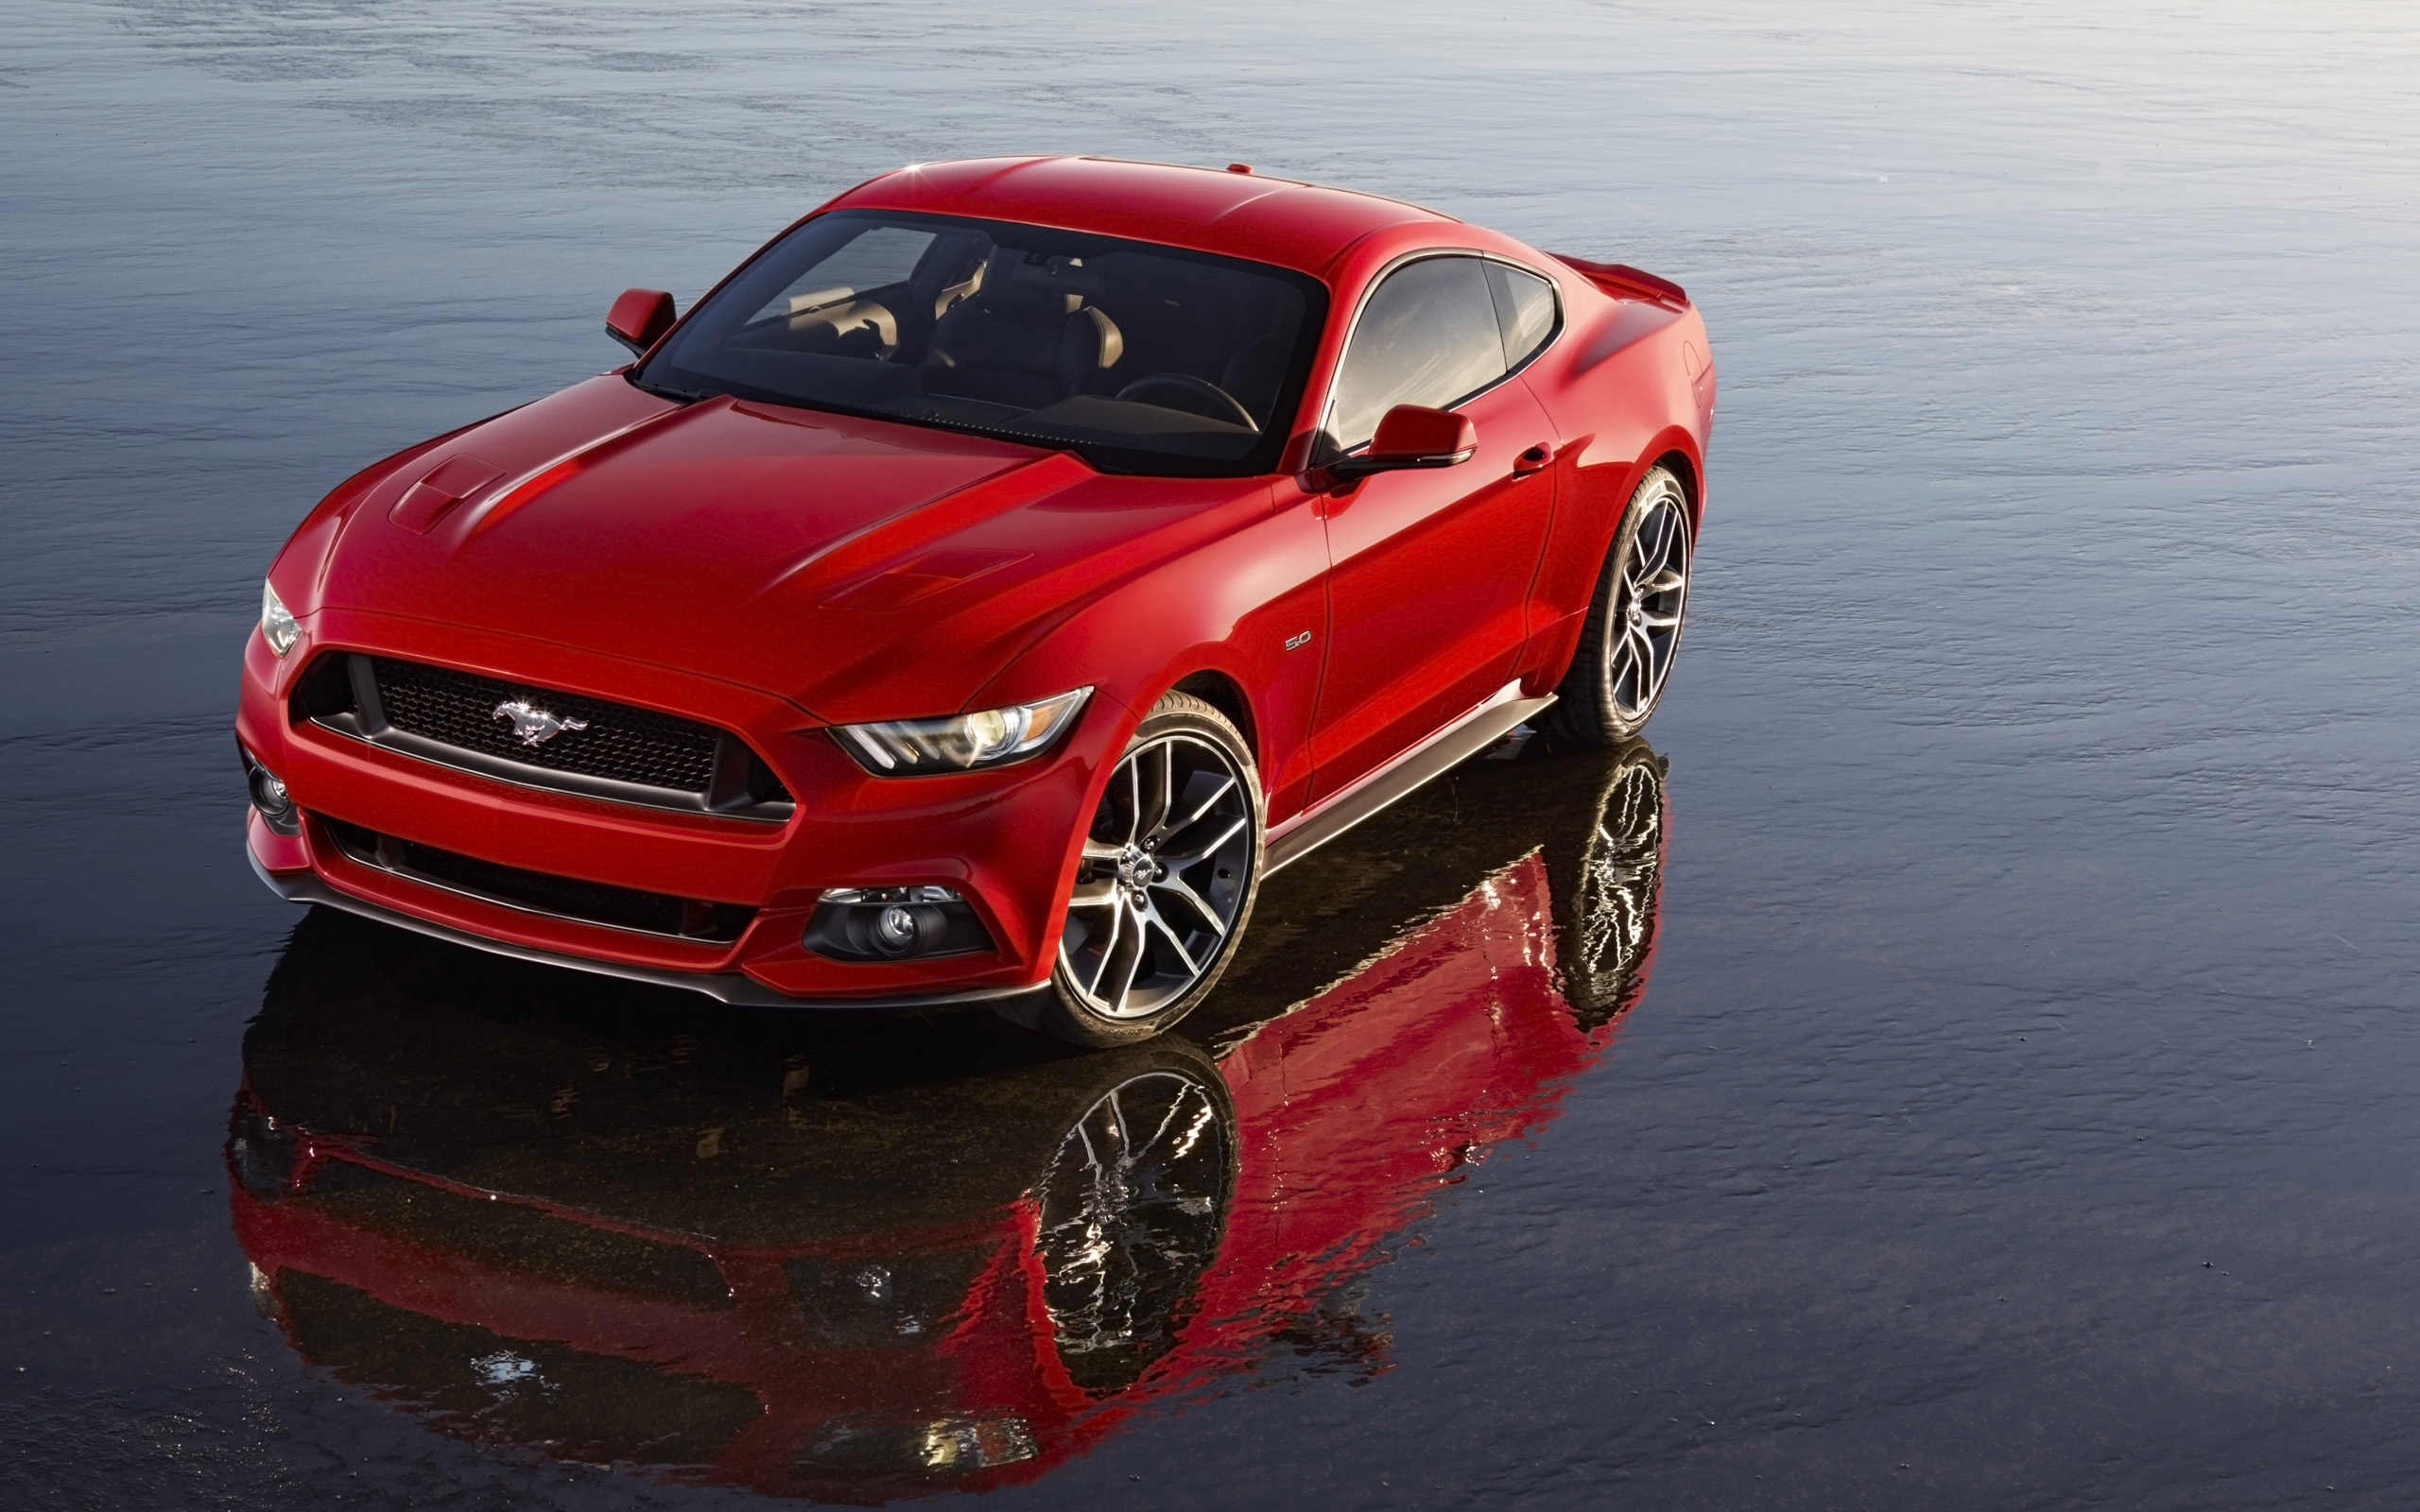 Ford Mustang Reflection Wallpaper Android